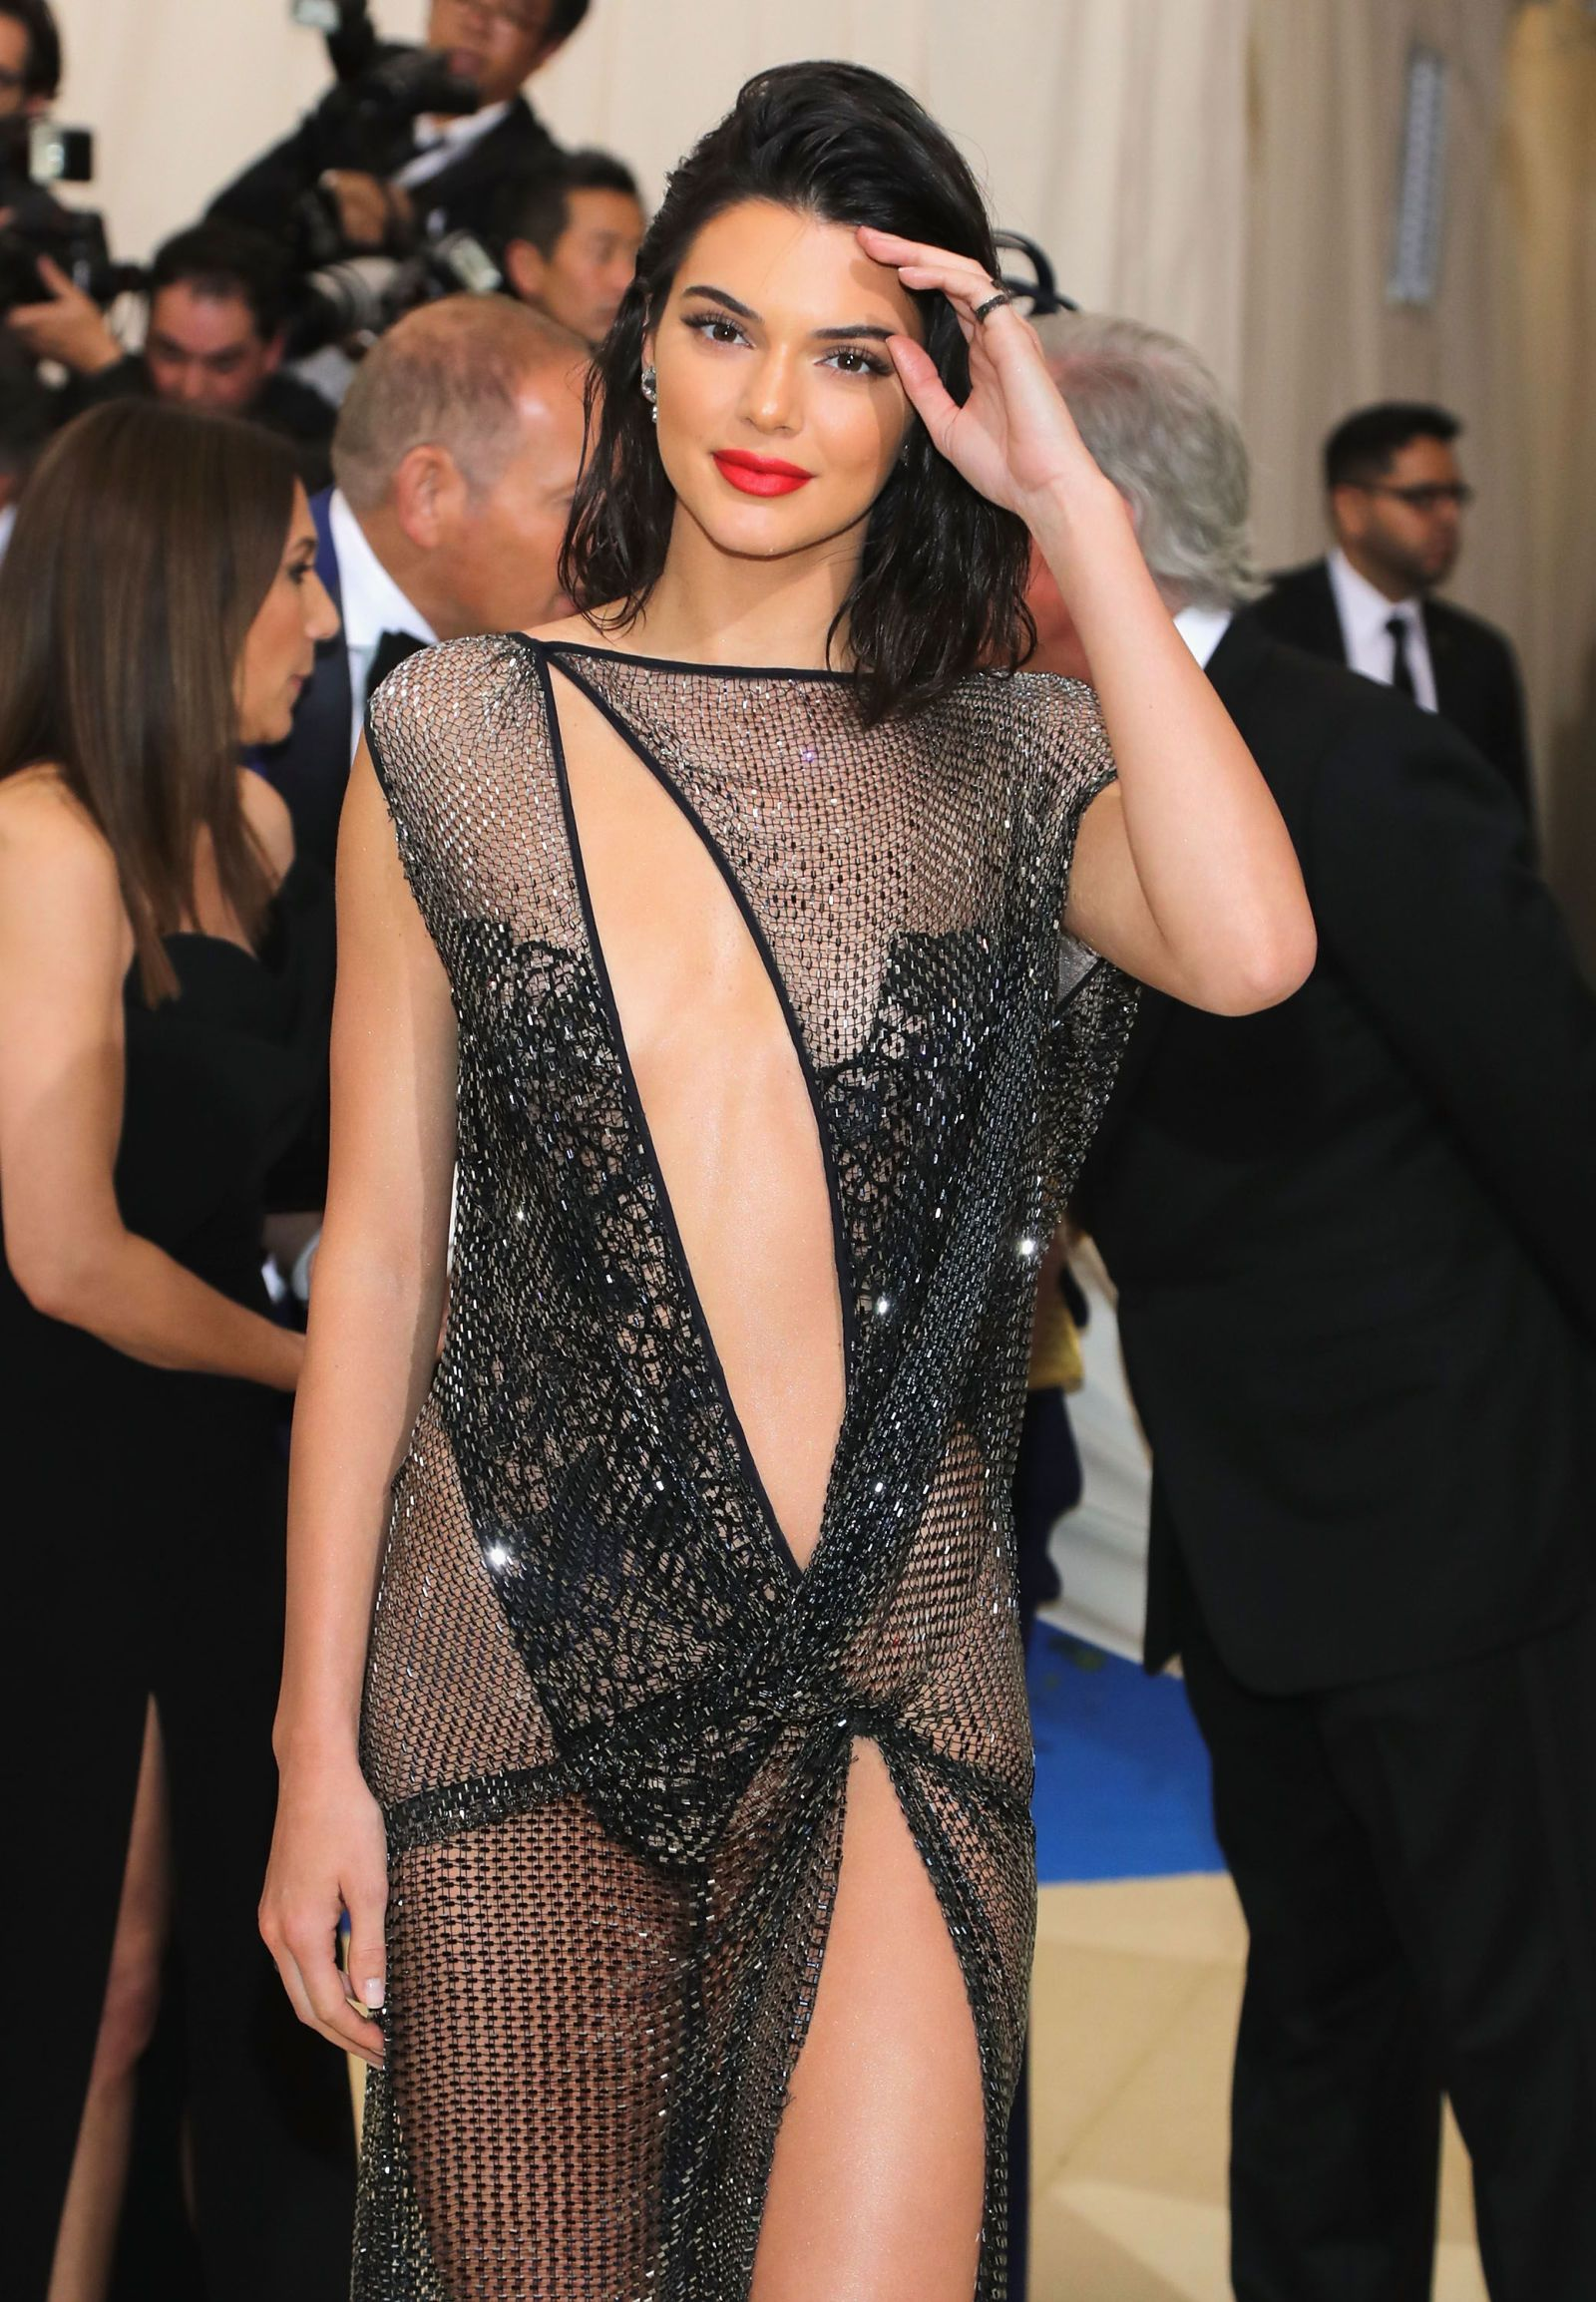 Discussion on this topic: Peggy Tsui Tits, kendall-jenner-sideboob-7-photos/